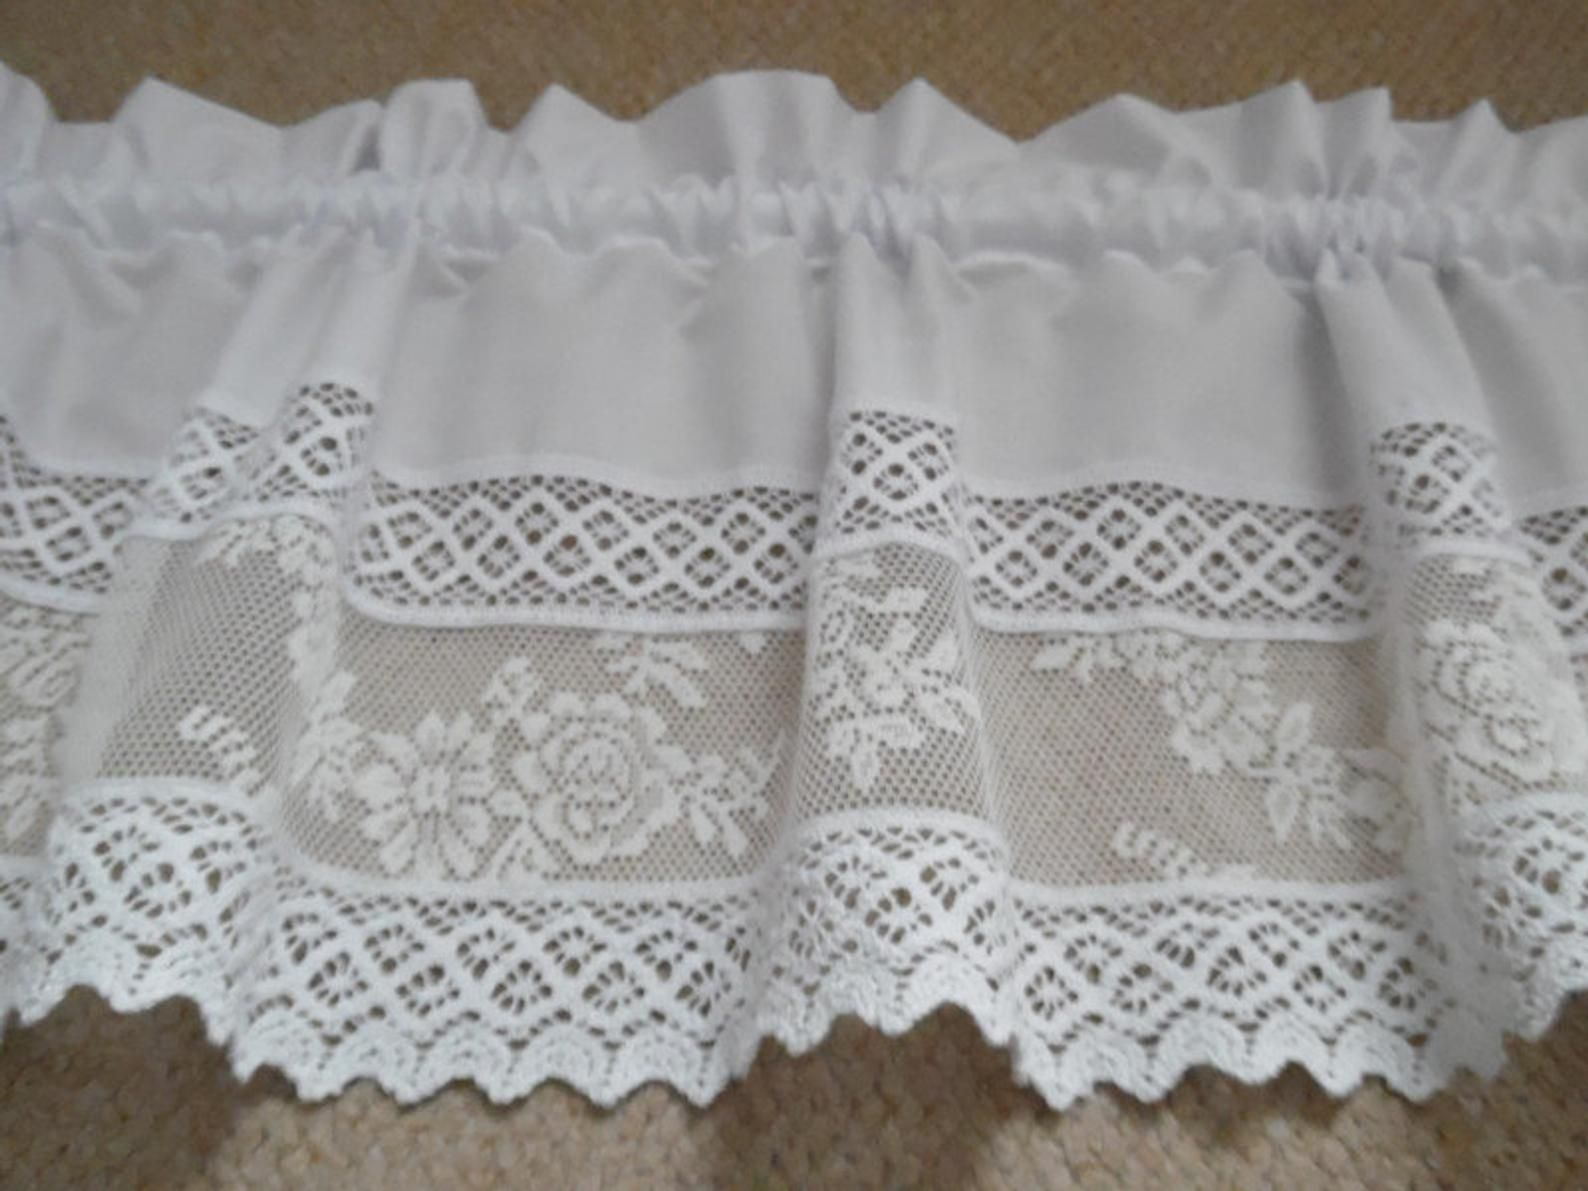 French Vintage Scheibengardine Spitze Lace Weiss Etsy Lace Lace Shorts Women